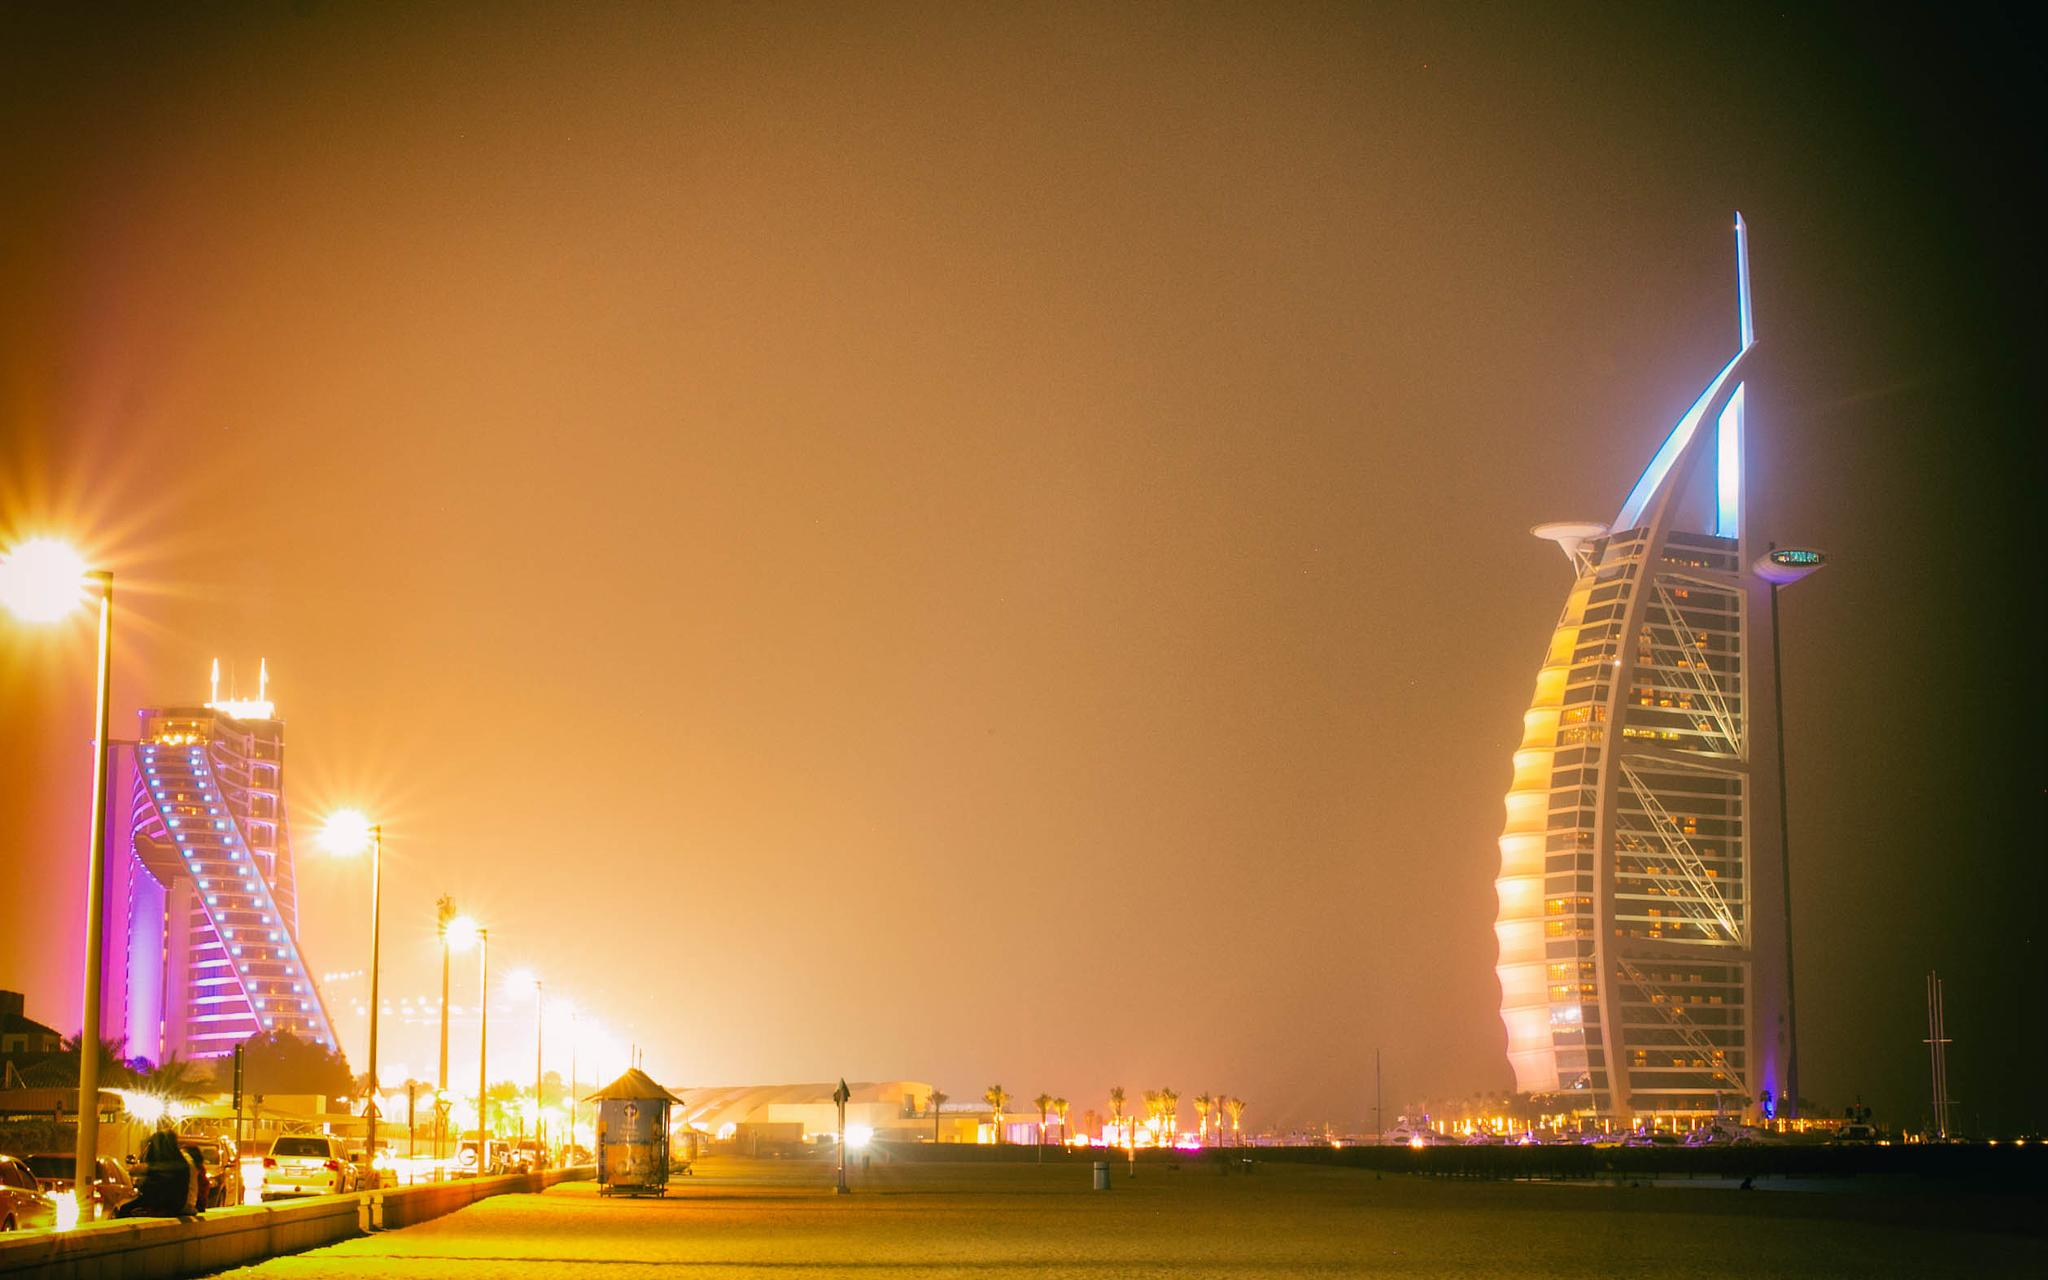 Burj Al-Arab and Jumeirah Beach Hotel at night by hayleyholloway1969